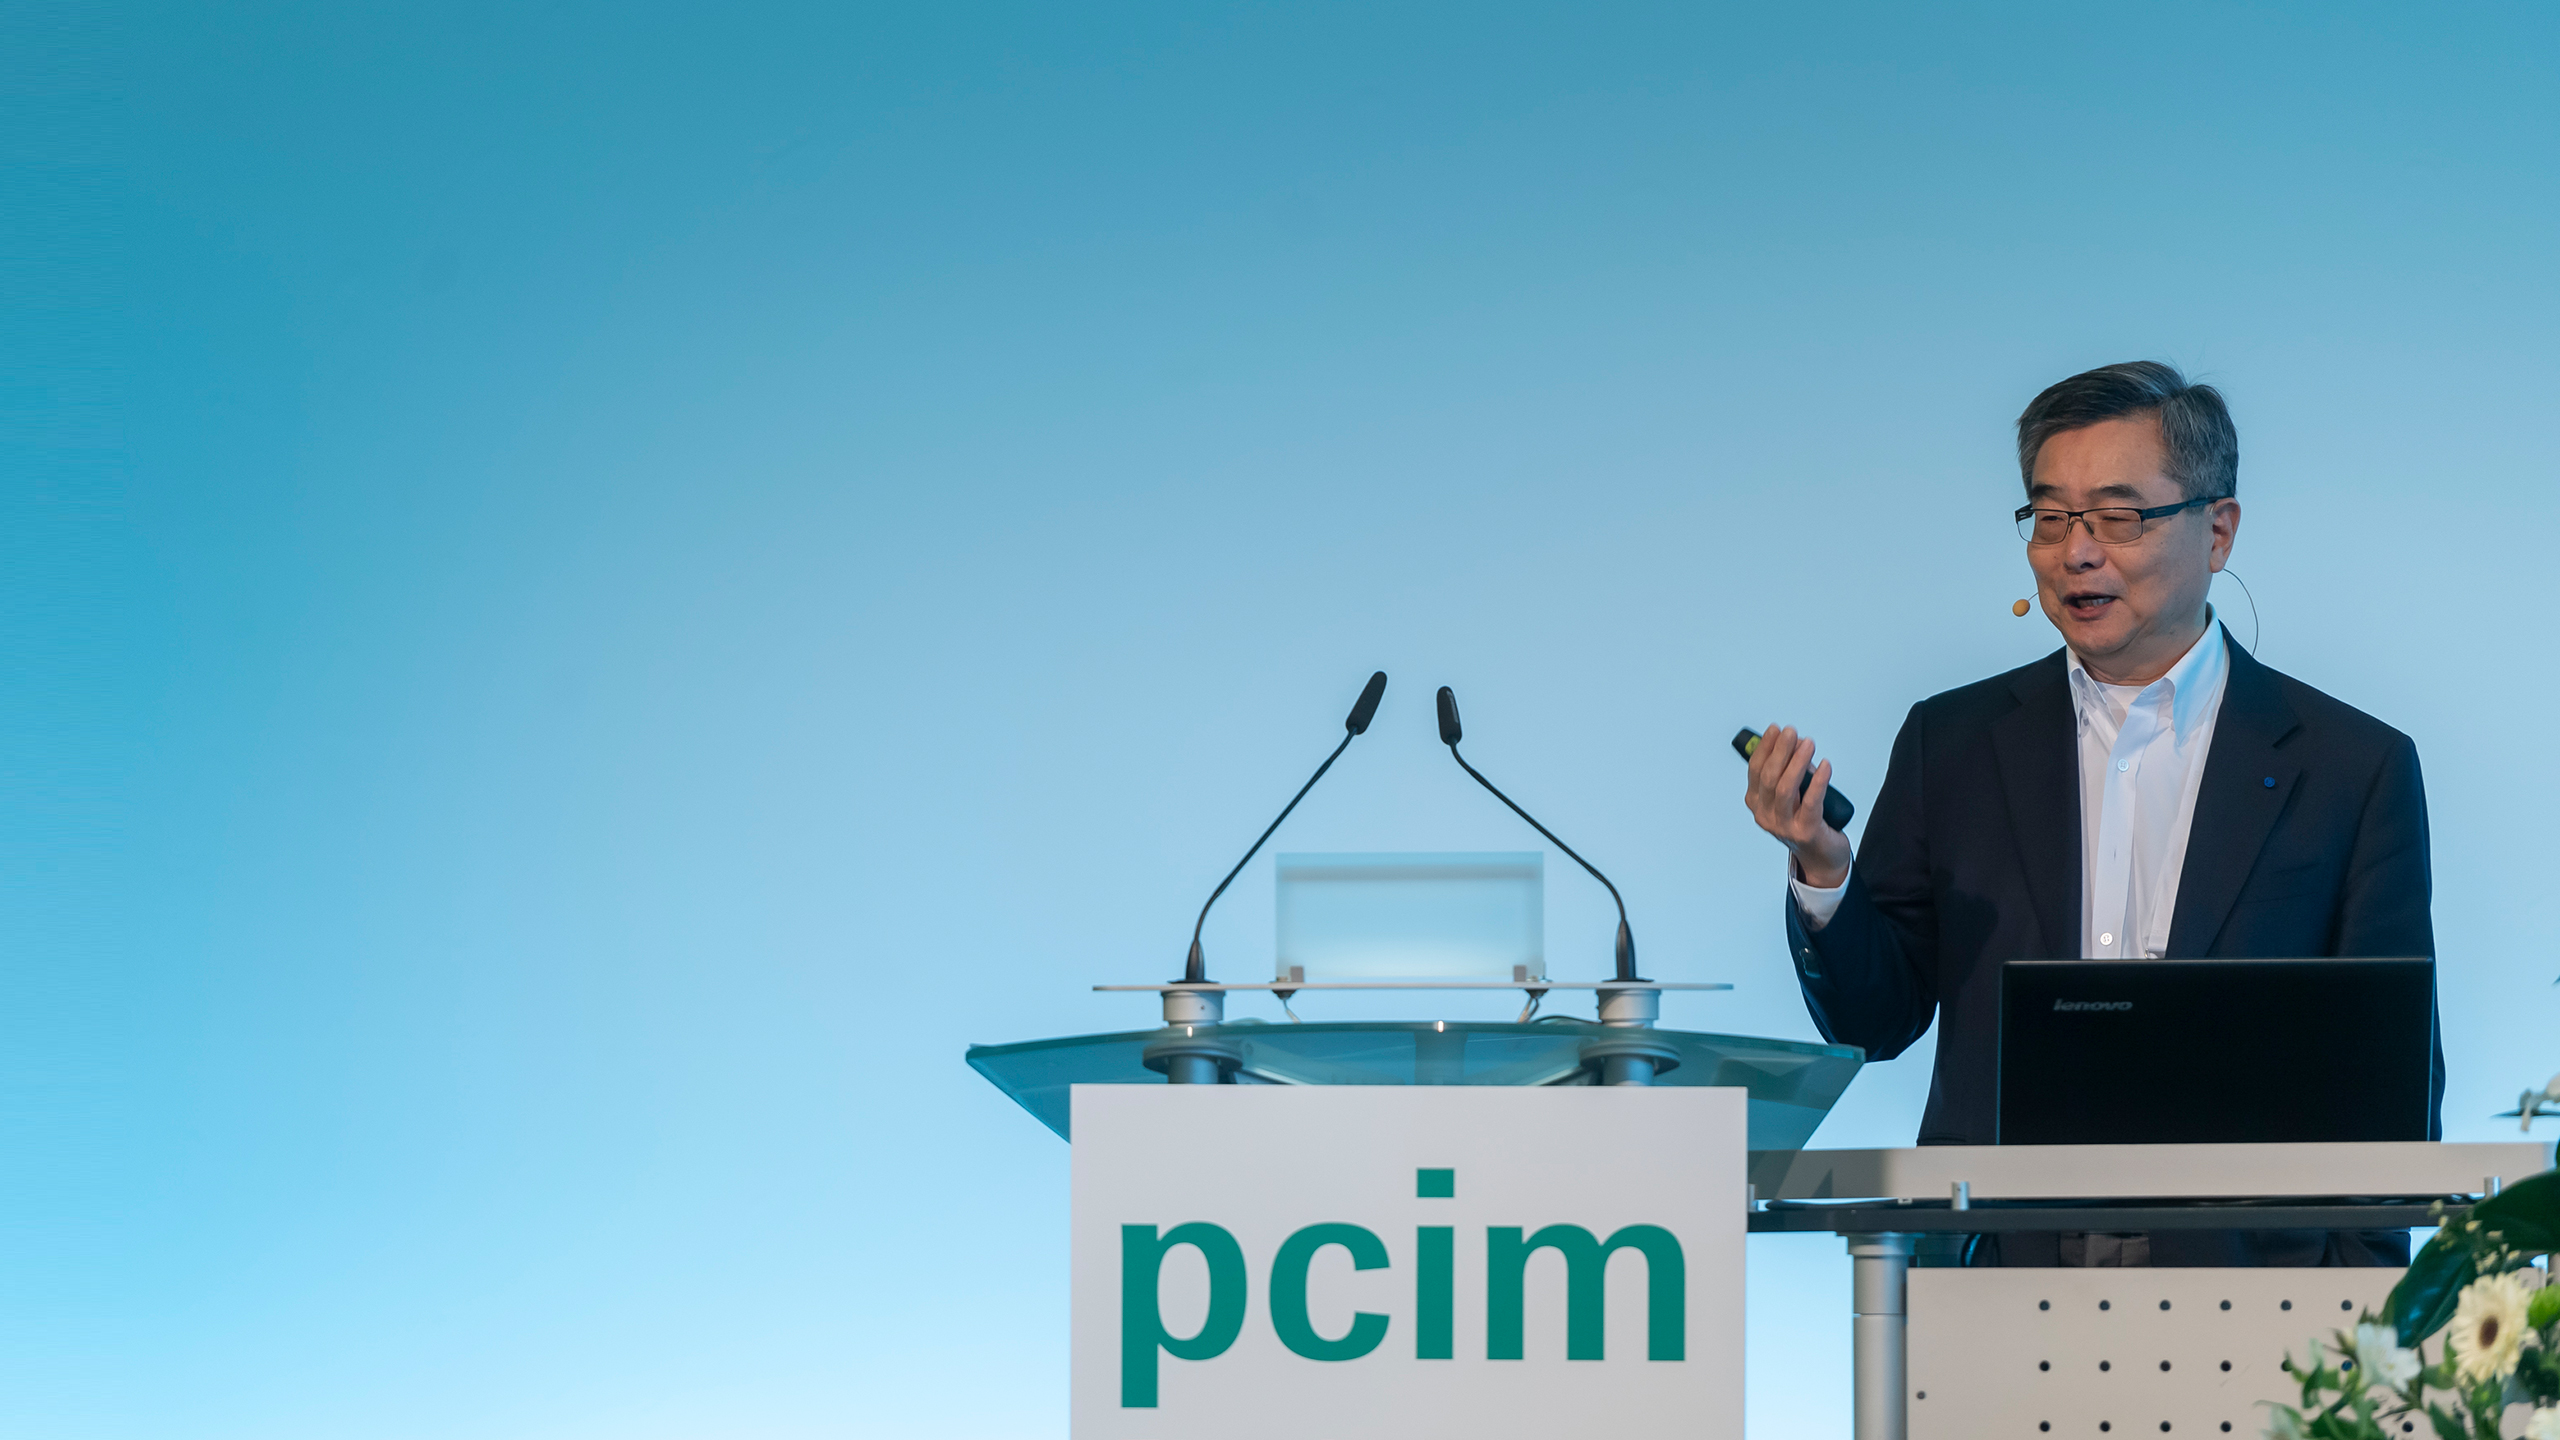 More than 300 contributions: PCIM Europe conference program published